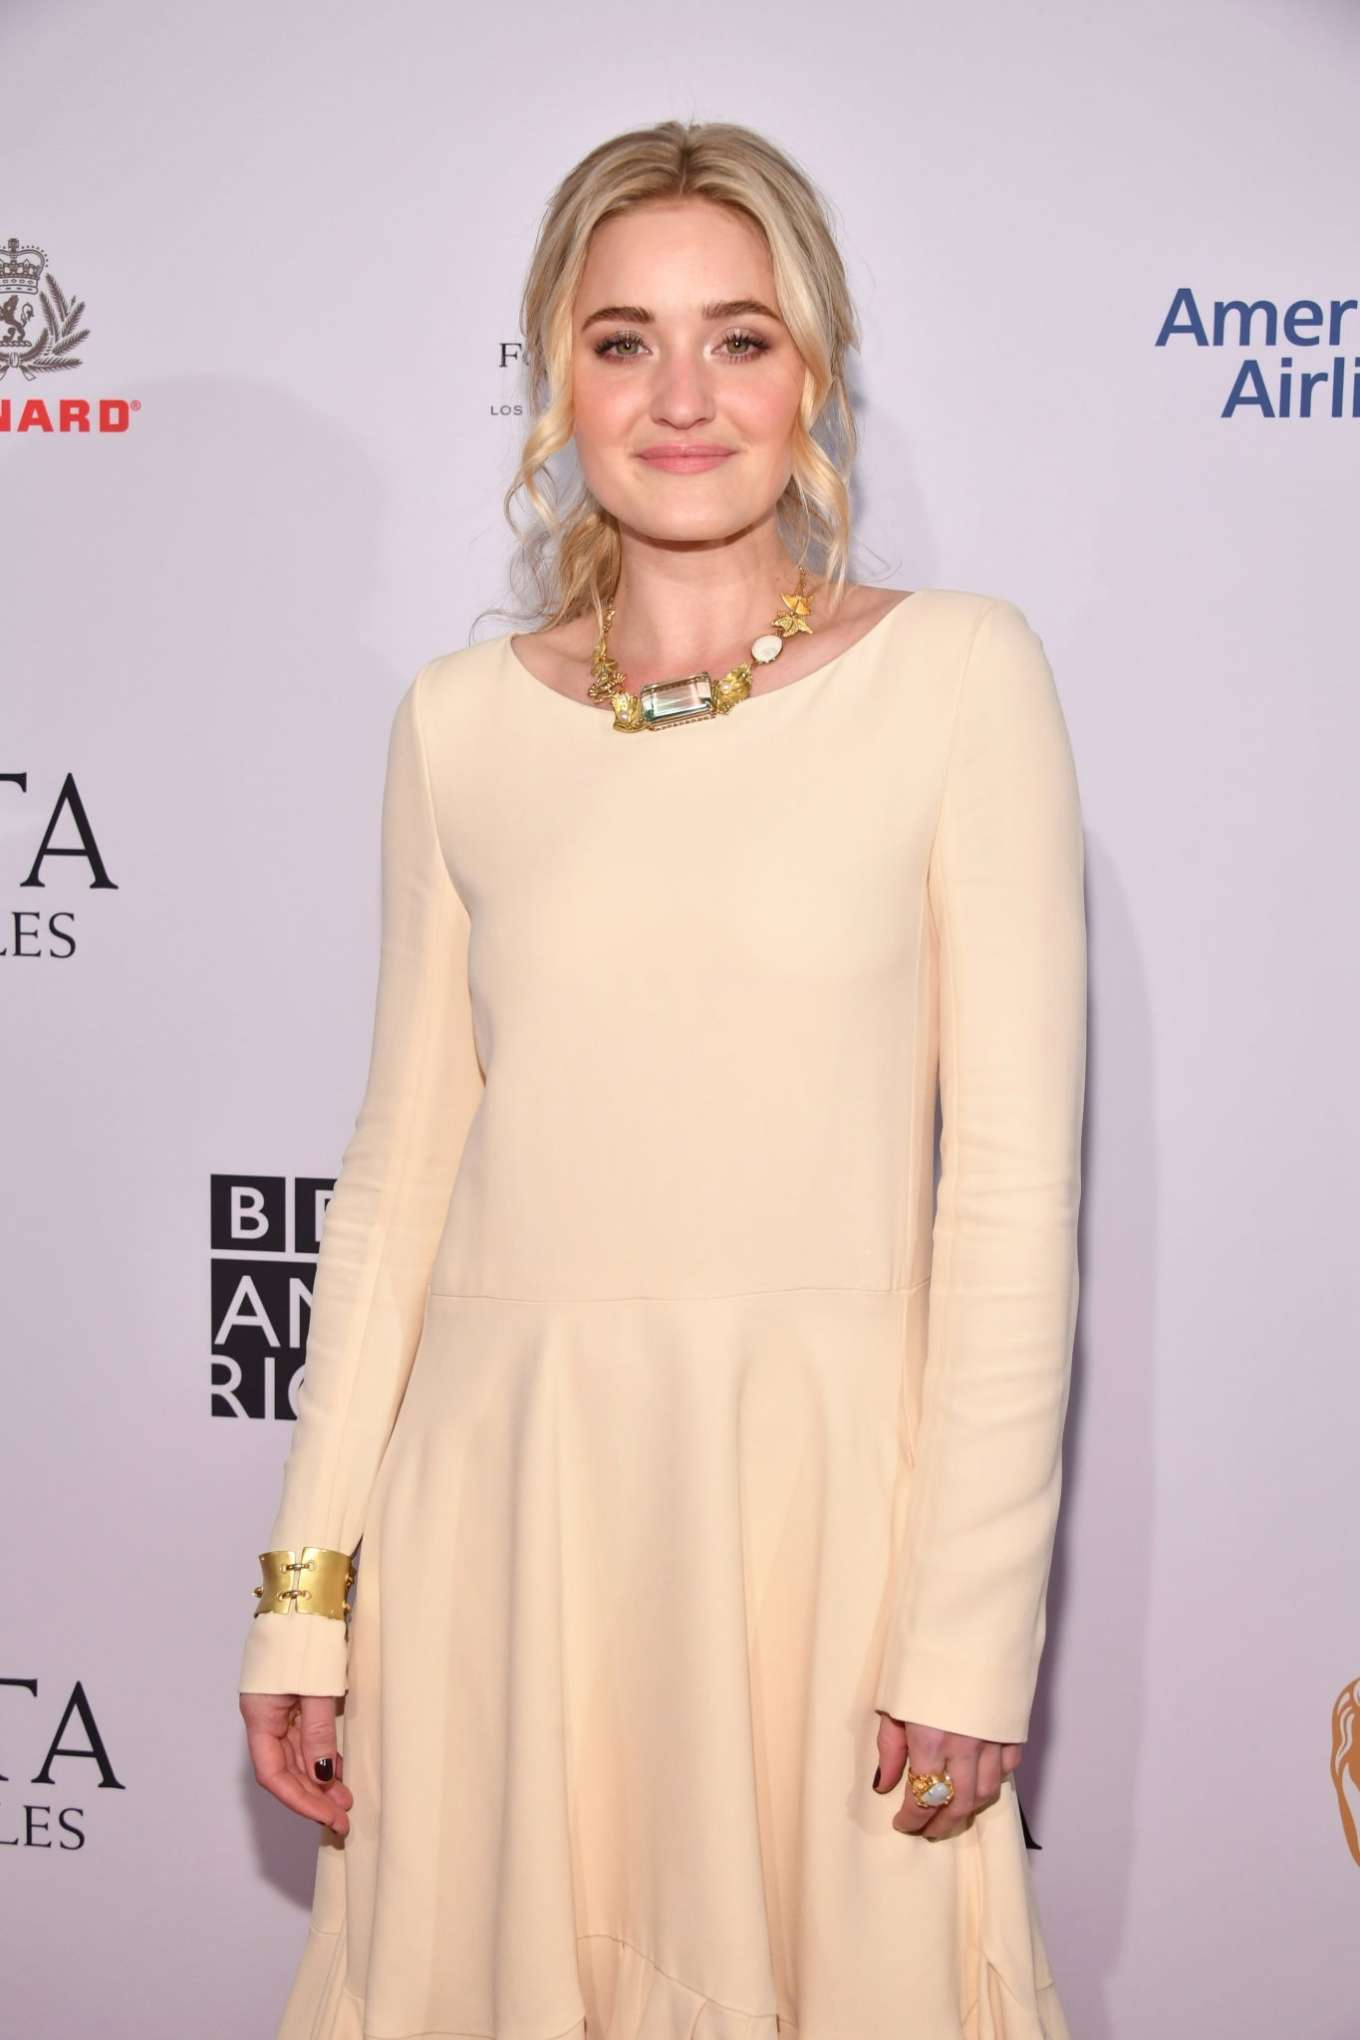 AJ Michalka 2020 : AJ Michalka – 2020 BAFTA LA Tea Party-23